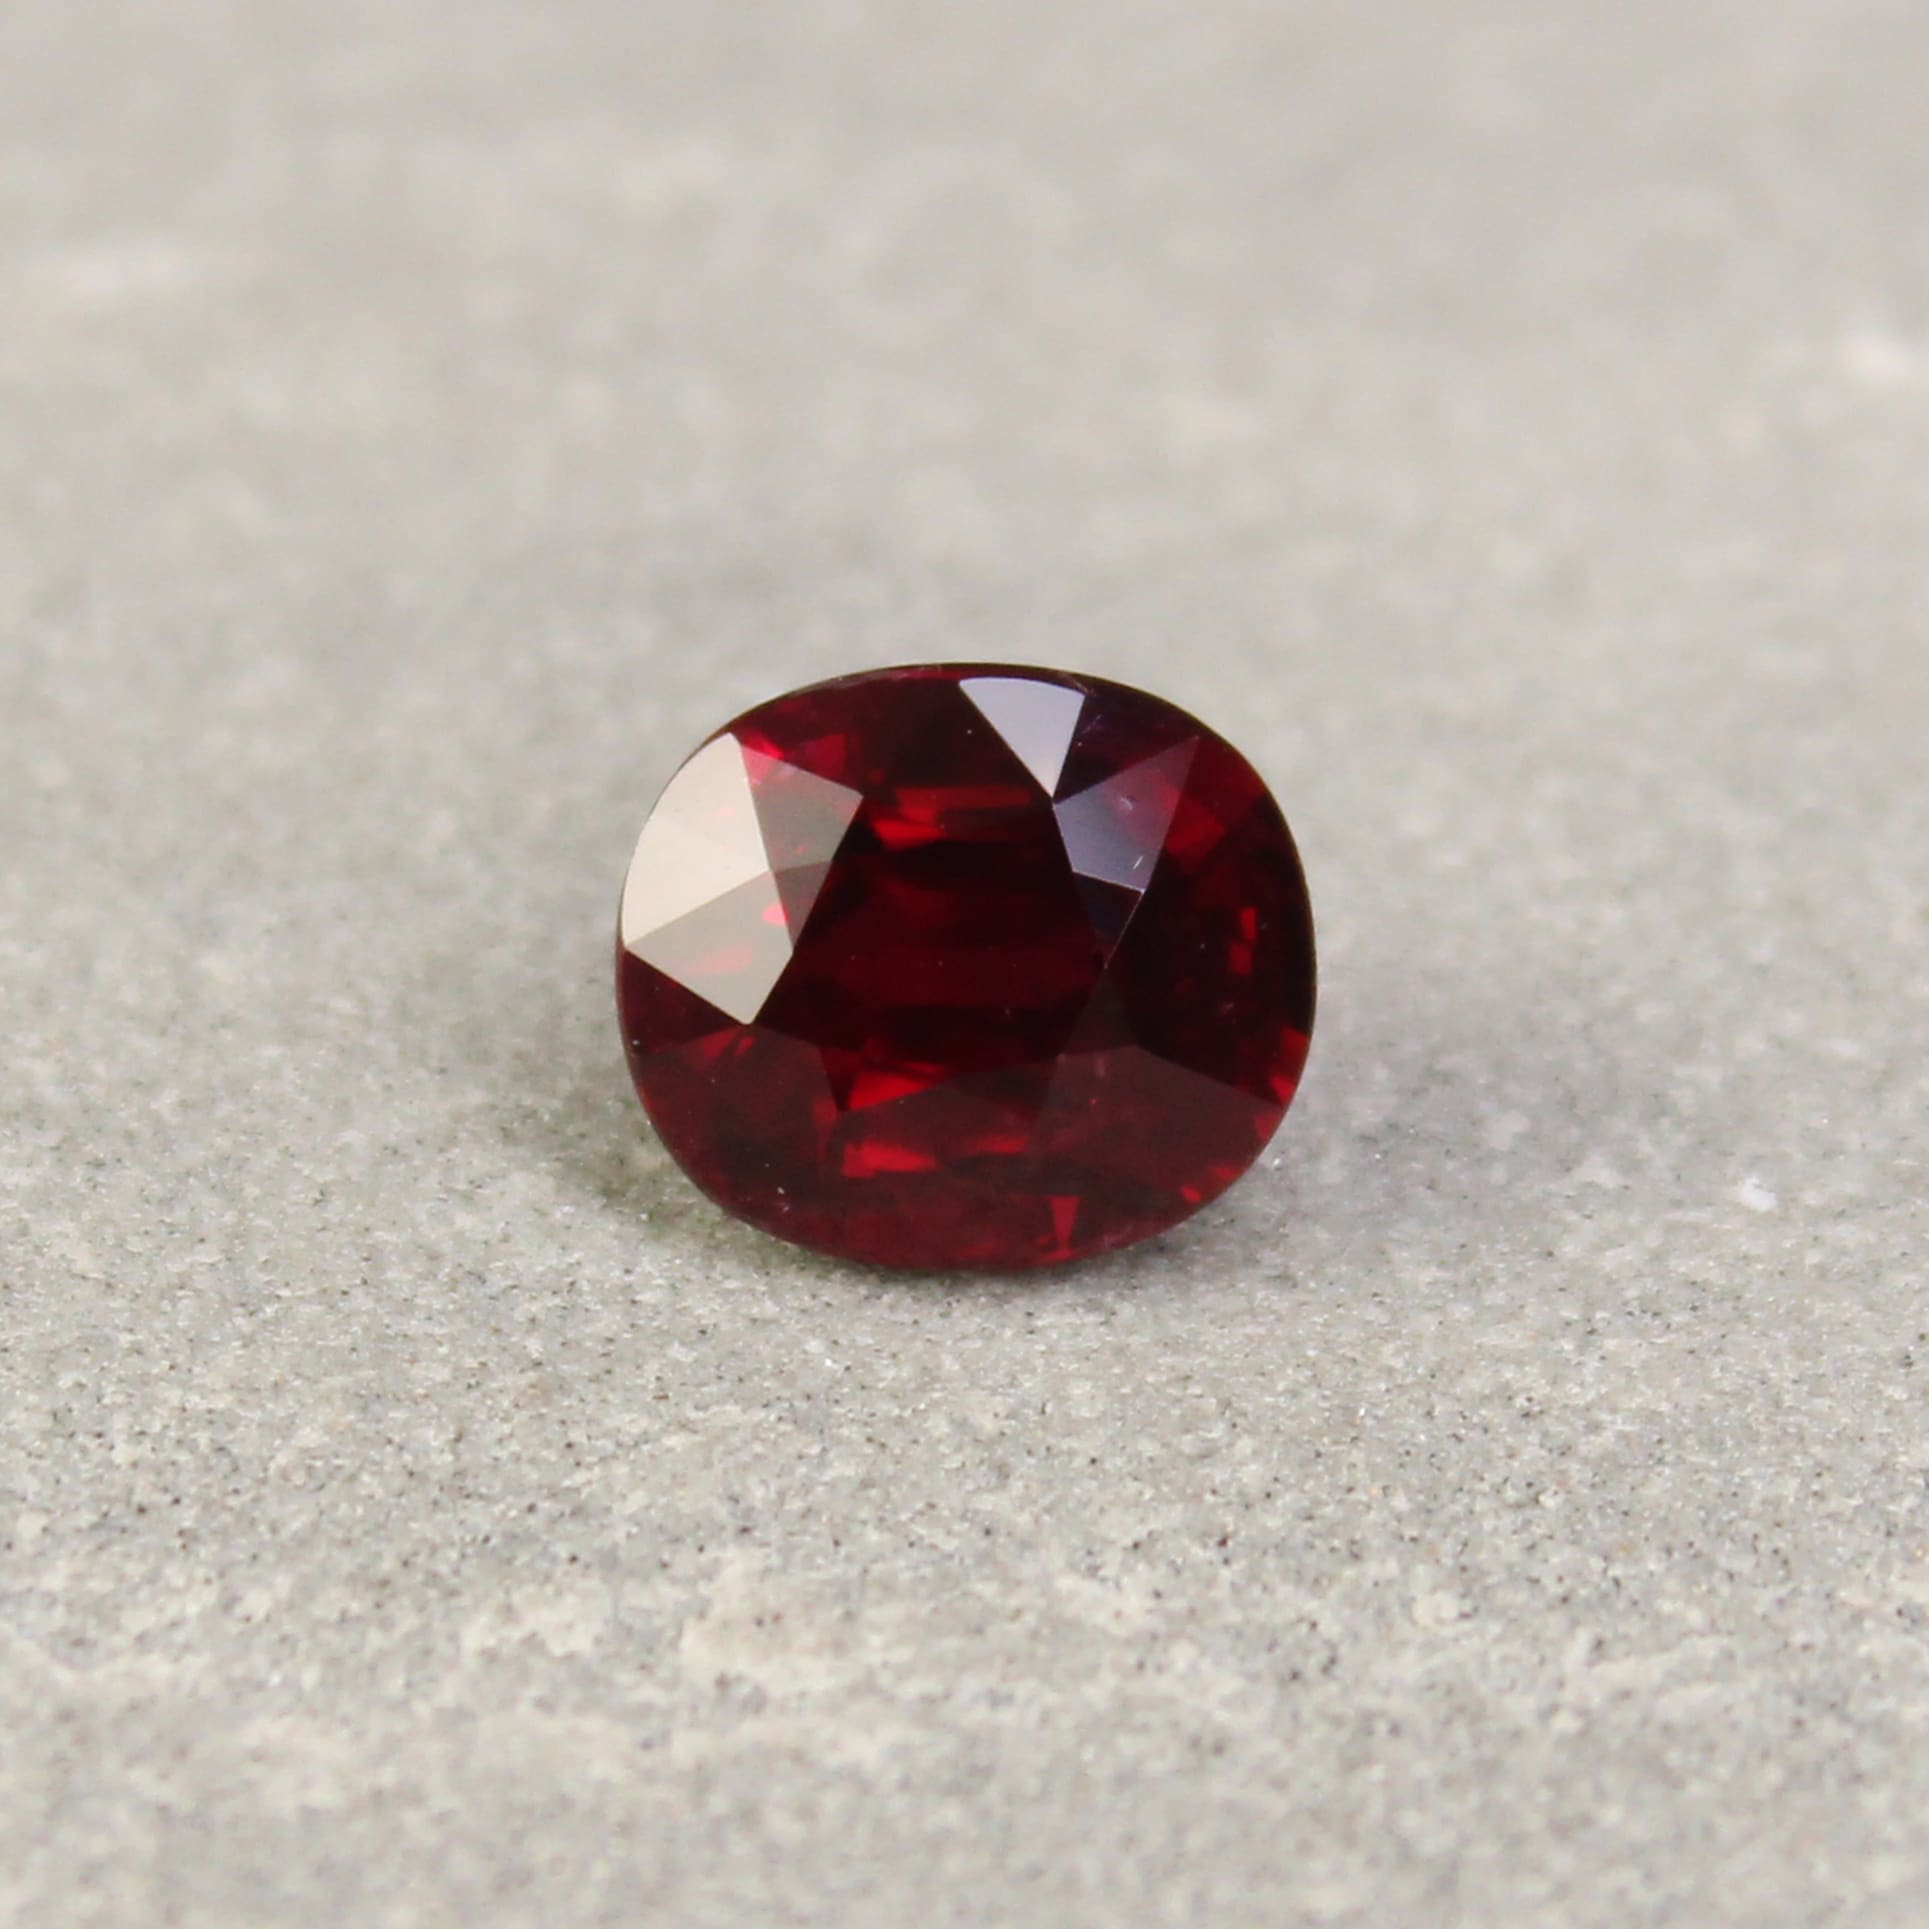 2.02 ct red oval ruby